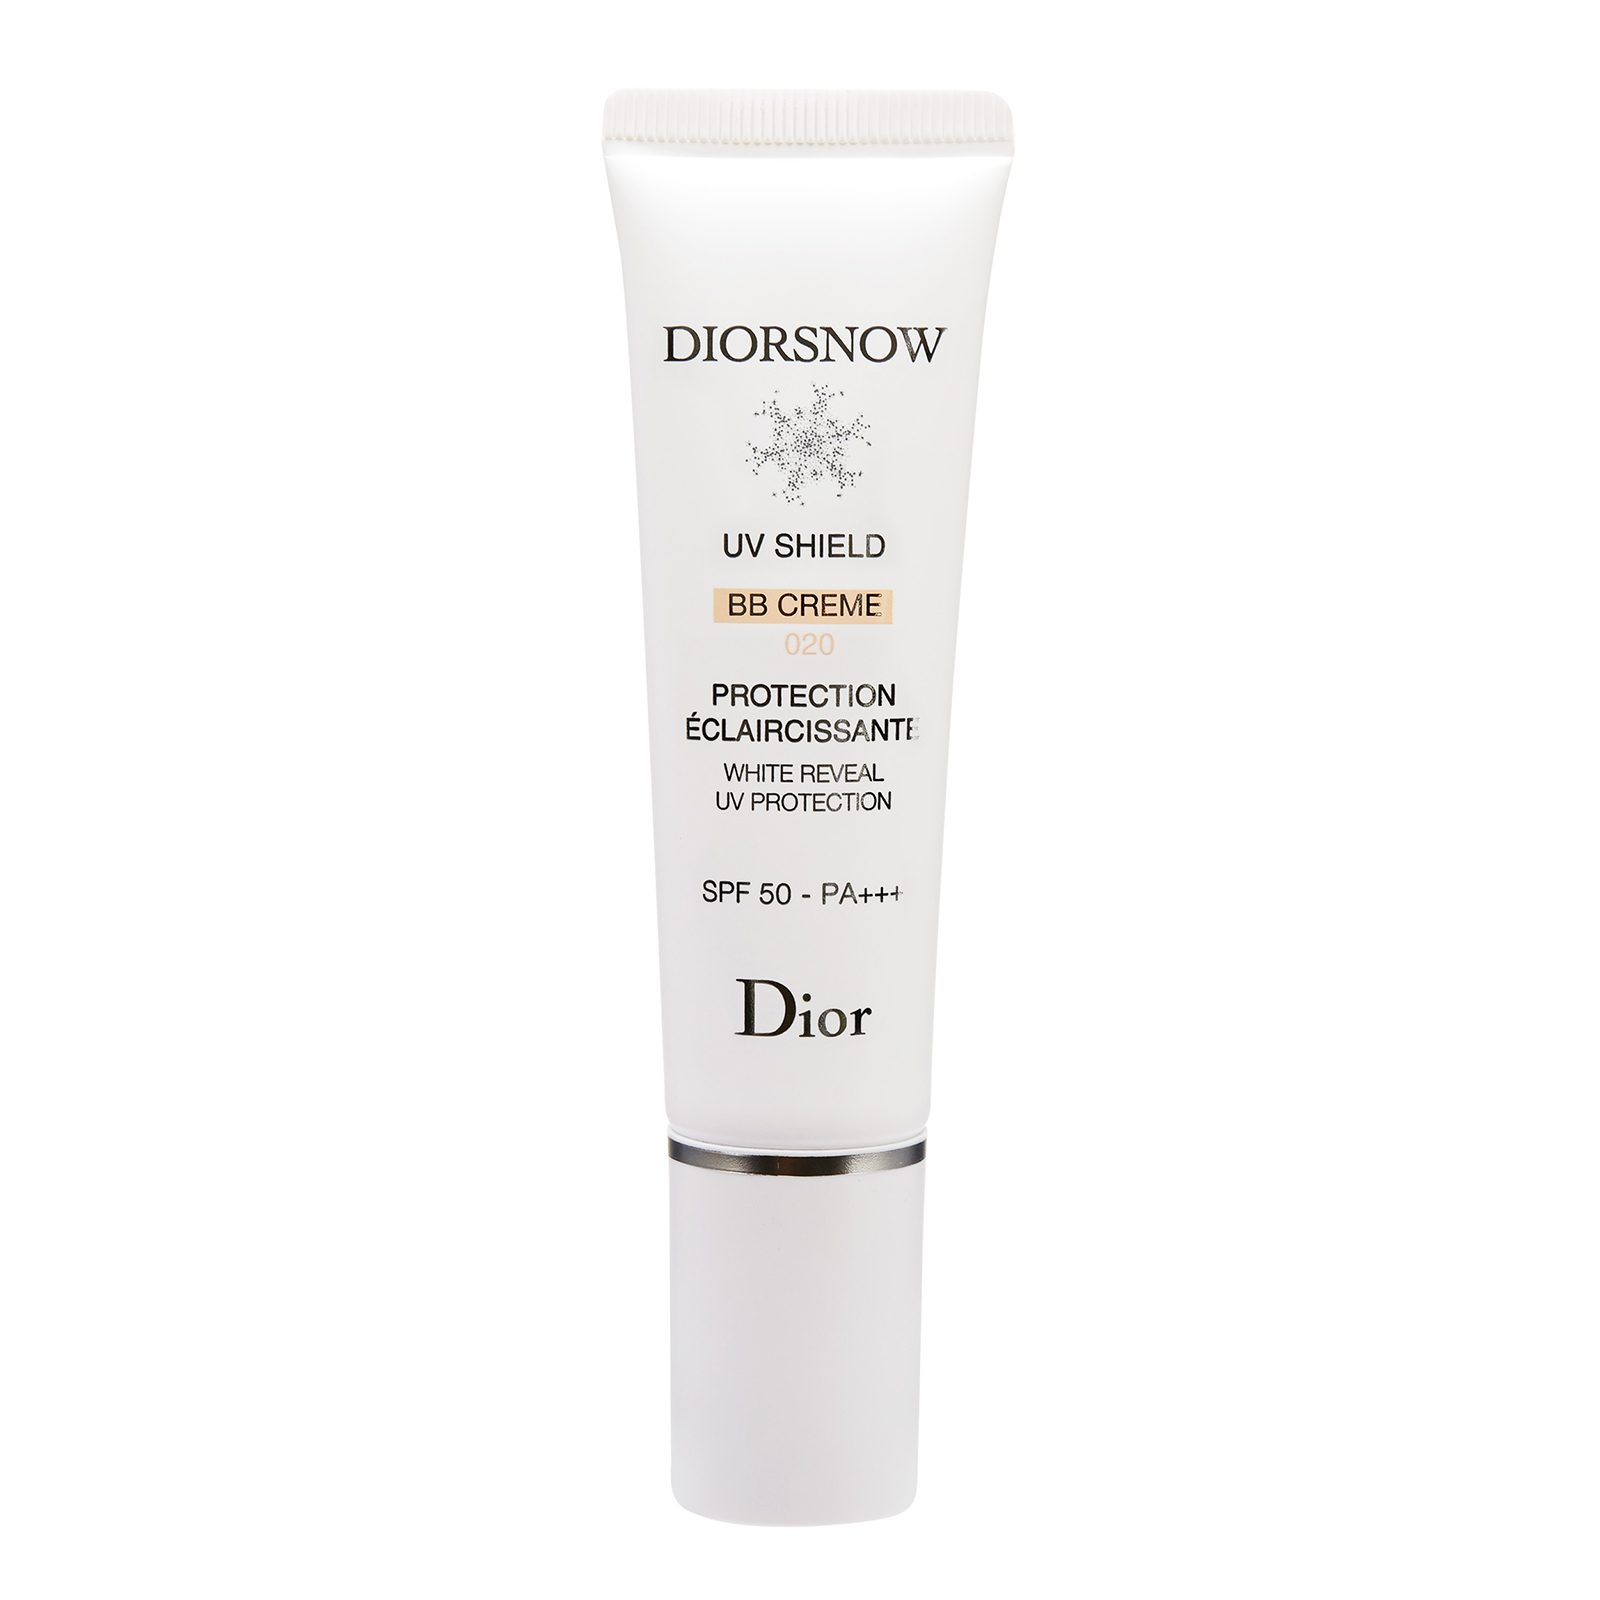 Christian Dior DiorSnow UV Shield BB Creme White reveal UV protection SPF 50 - PA+++ #020, 1.2oz, 30ml